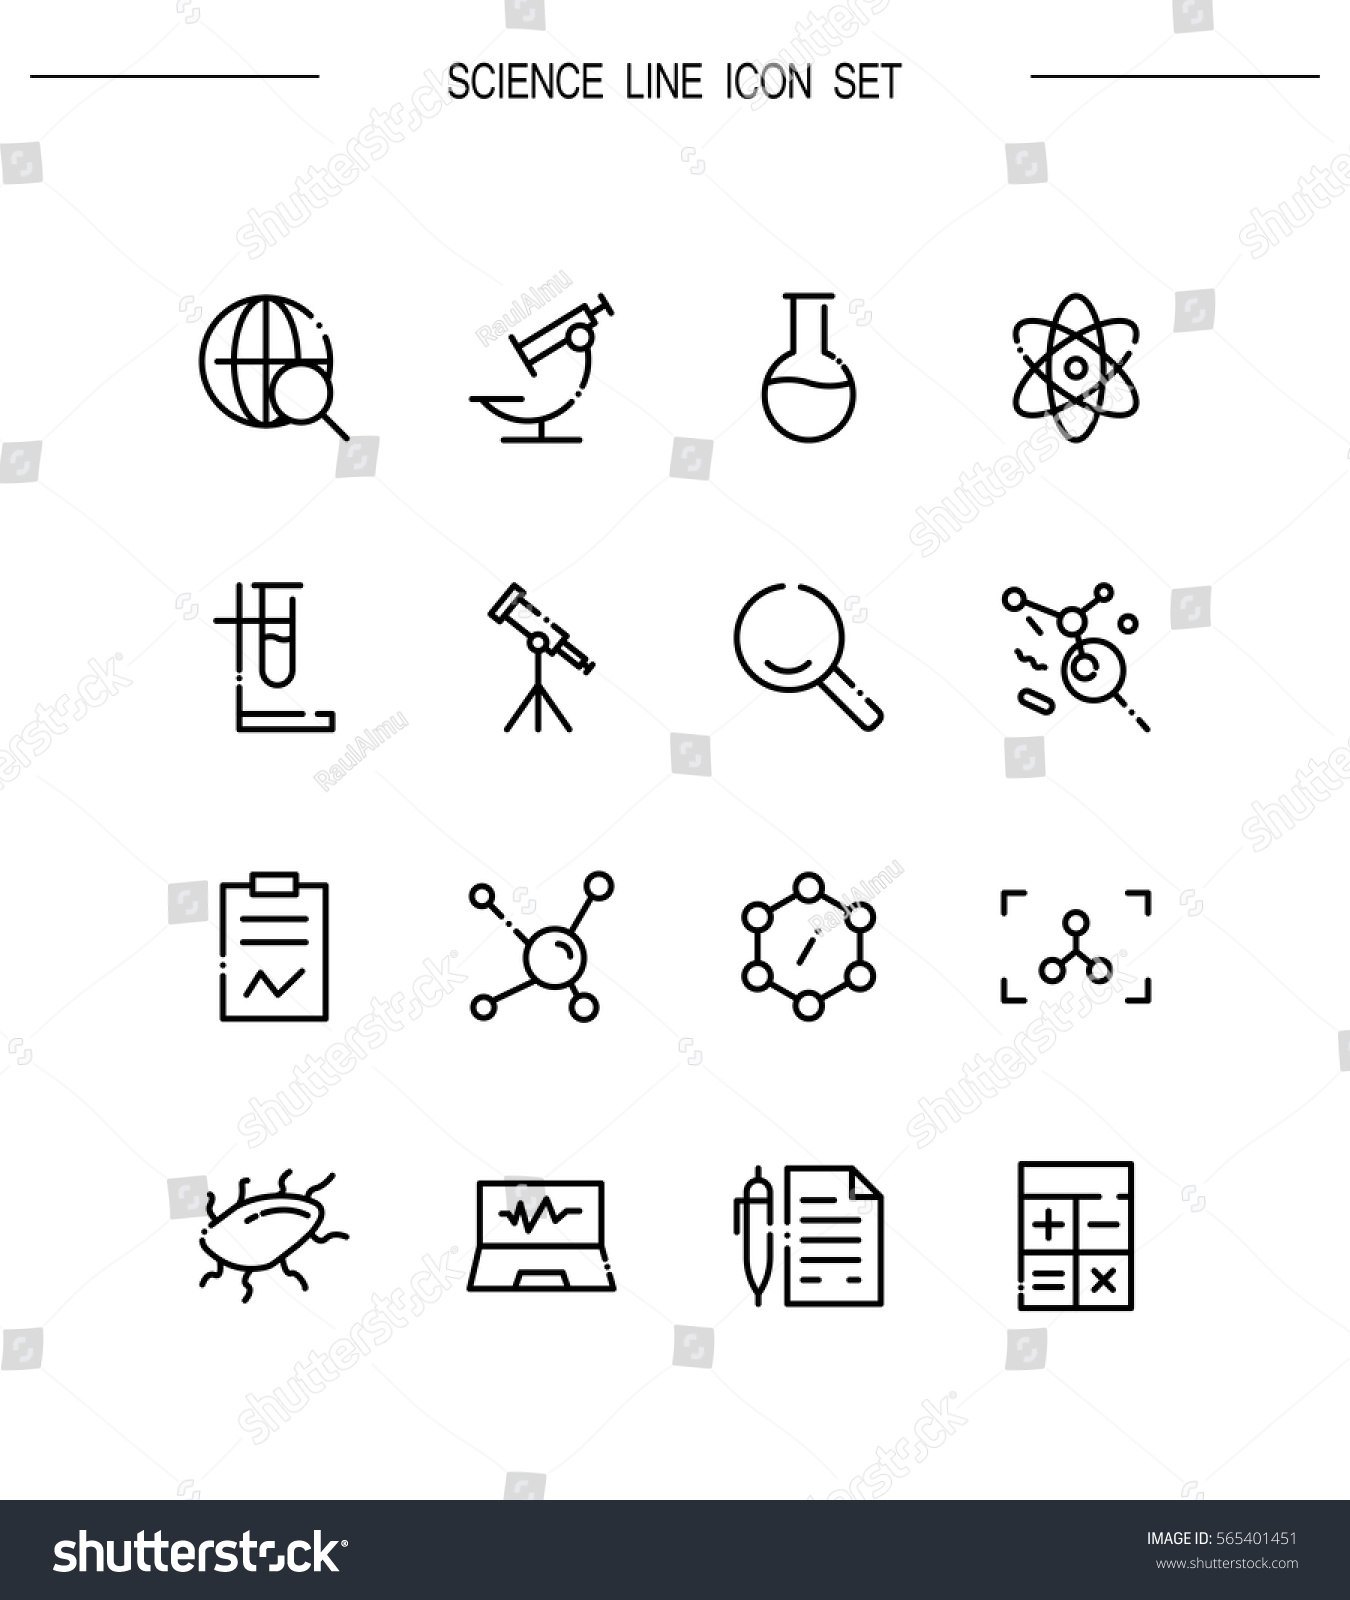 Science icon set collection high quality stock vector 565401451 collection of high quality outline symbols for web design mobile app biocorpaavc Choice Image